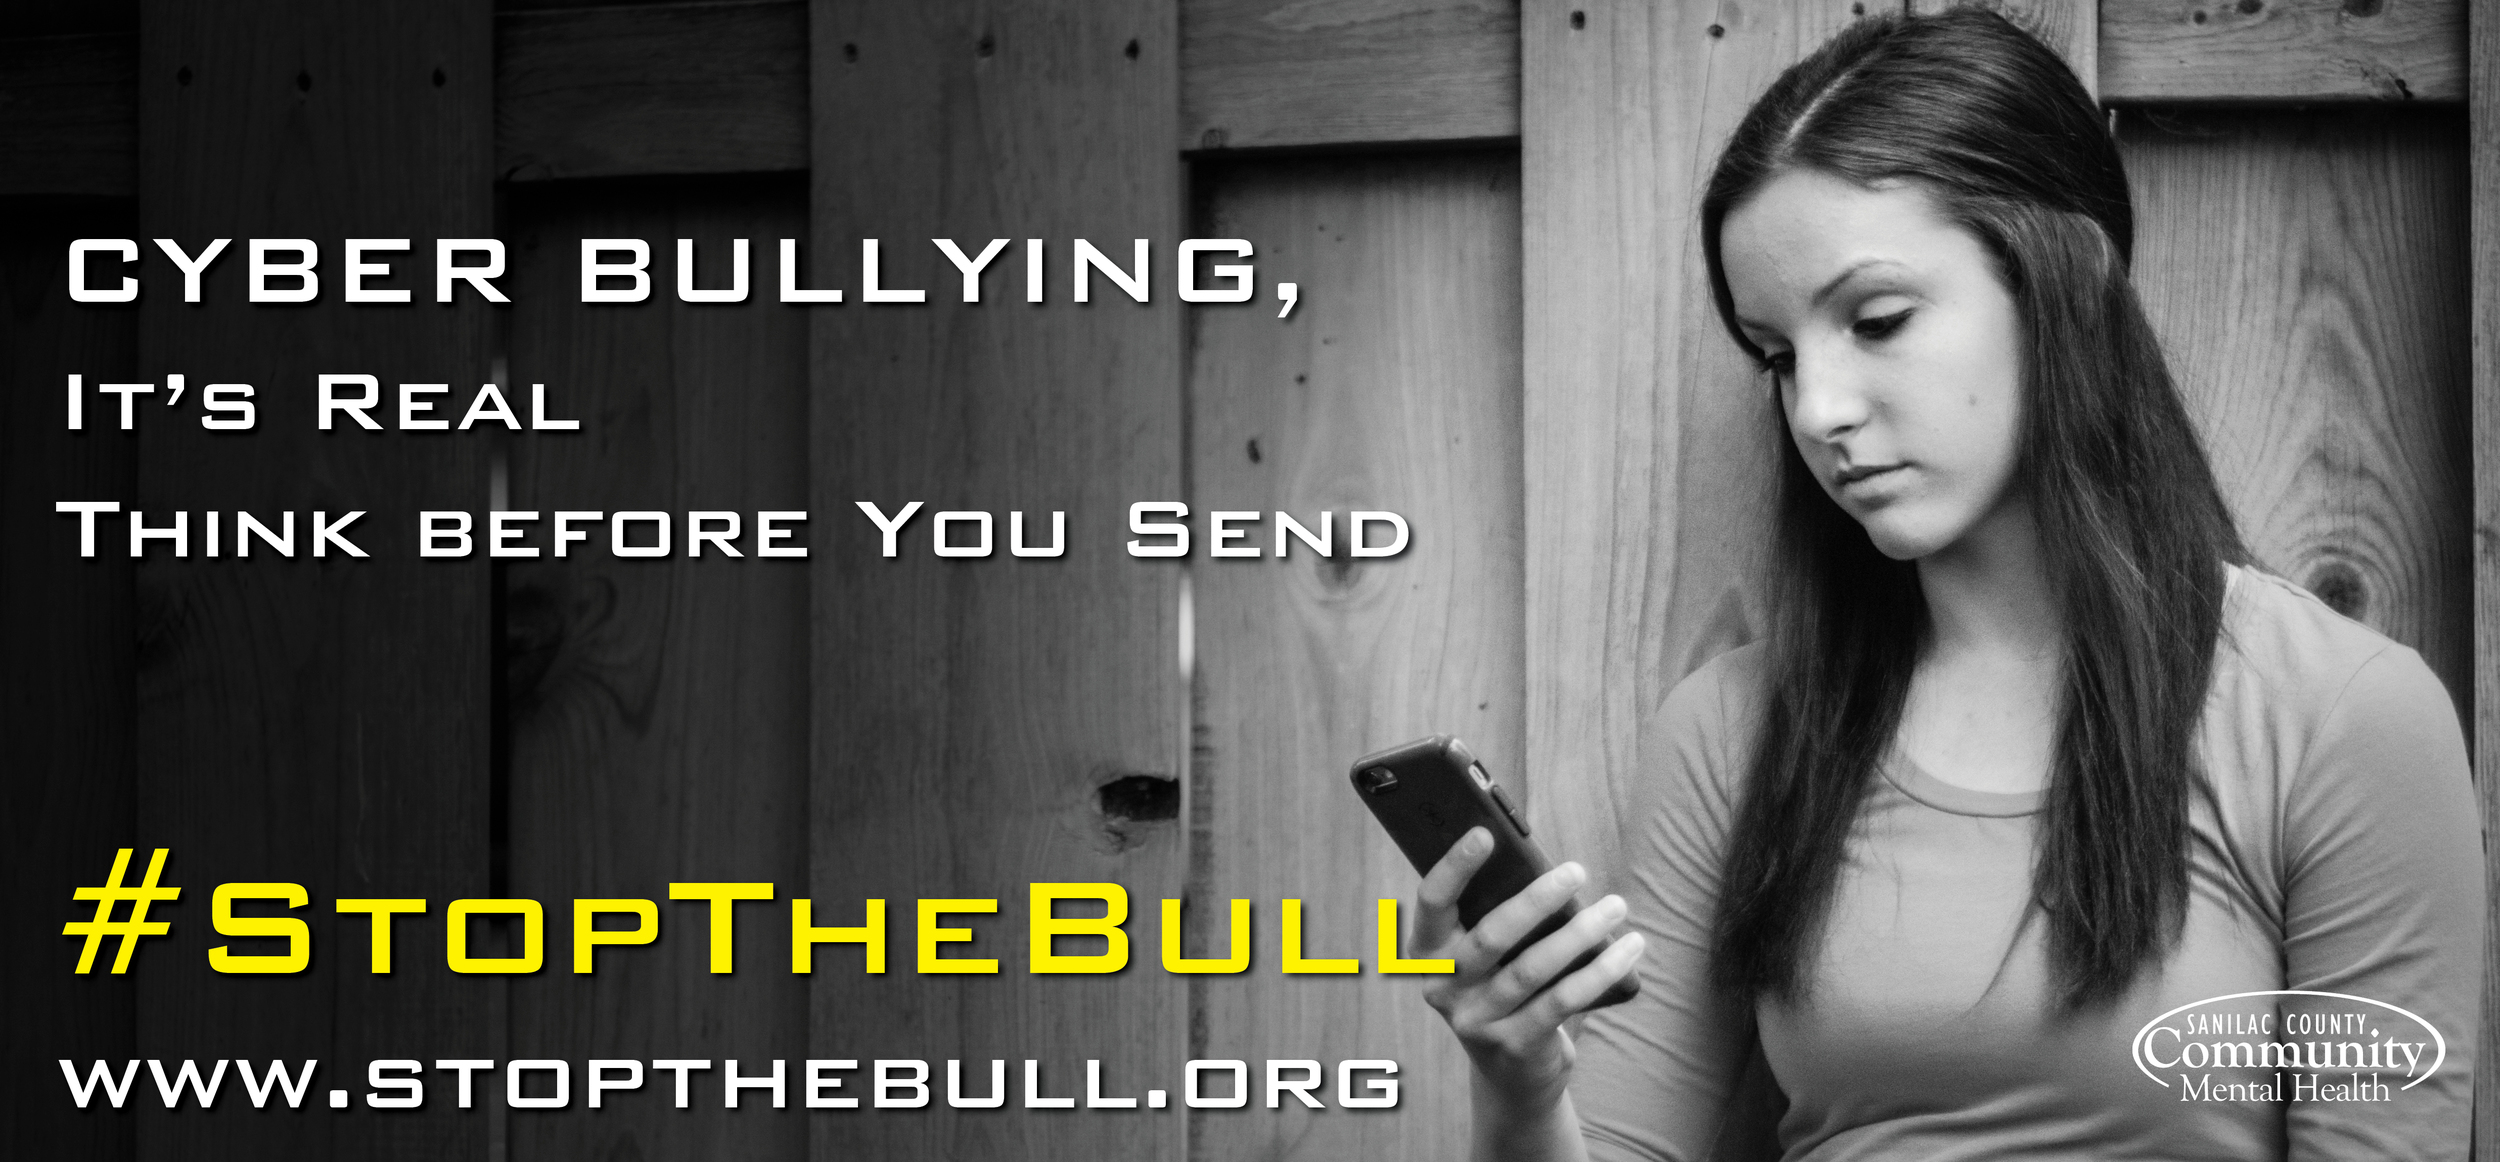 """Bullying, whether in person or electronic, can have a serious impact on a person's mental health over the course of time. The newer concern that cyber bullying brings with it is that it does not have to be done face to face or """"out loud"""". You could have somebody sitting right next to you bullying or being bullied and never know it. As with most mental health related issues; prevention, early identification, and early intervention can make a world of difference. As parents, we should take an active interest in what is being done on electronic devices in our homes or in the possession of our children. Anybody, adult or child, who knows of cyber bullying taking place can bring it out in the open and help put an end to it. If you know something, say something.      #StopTheBull"""